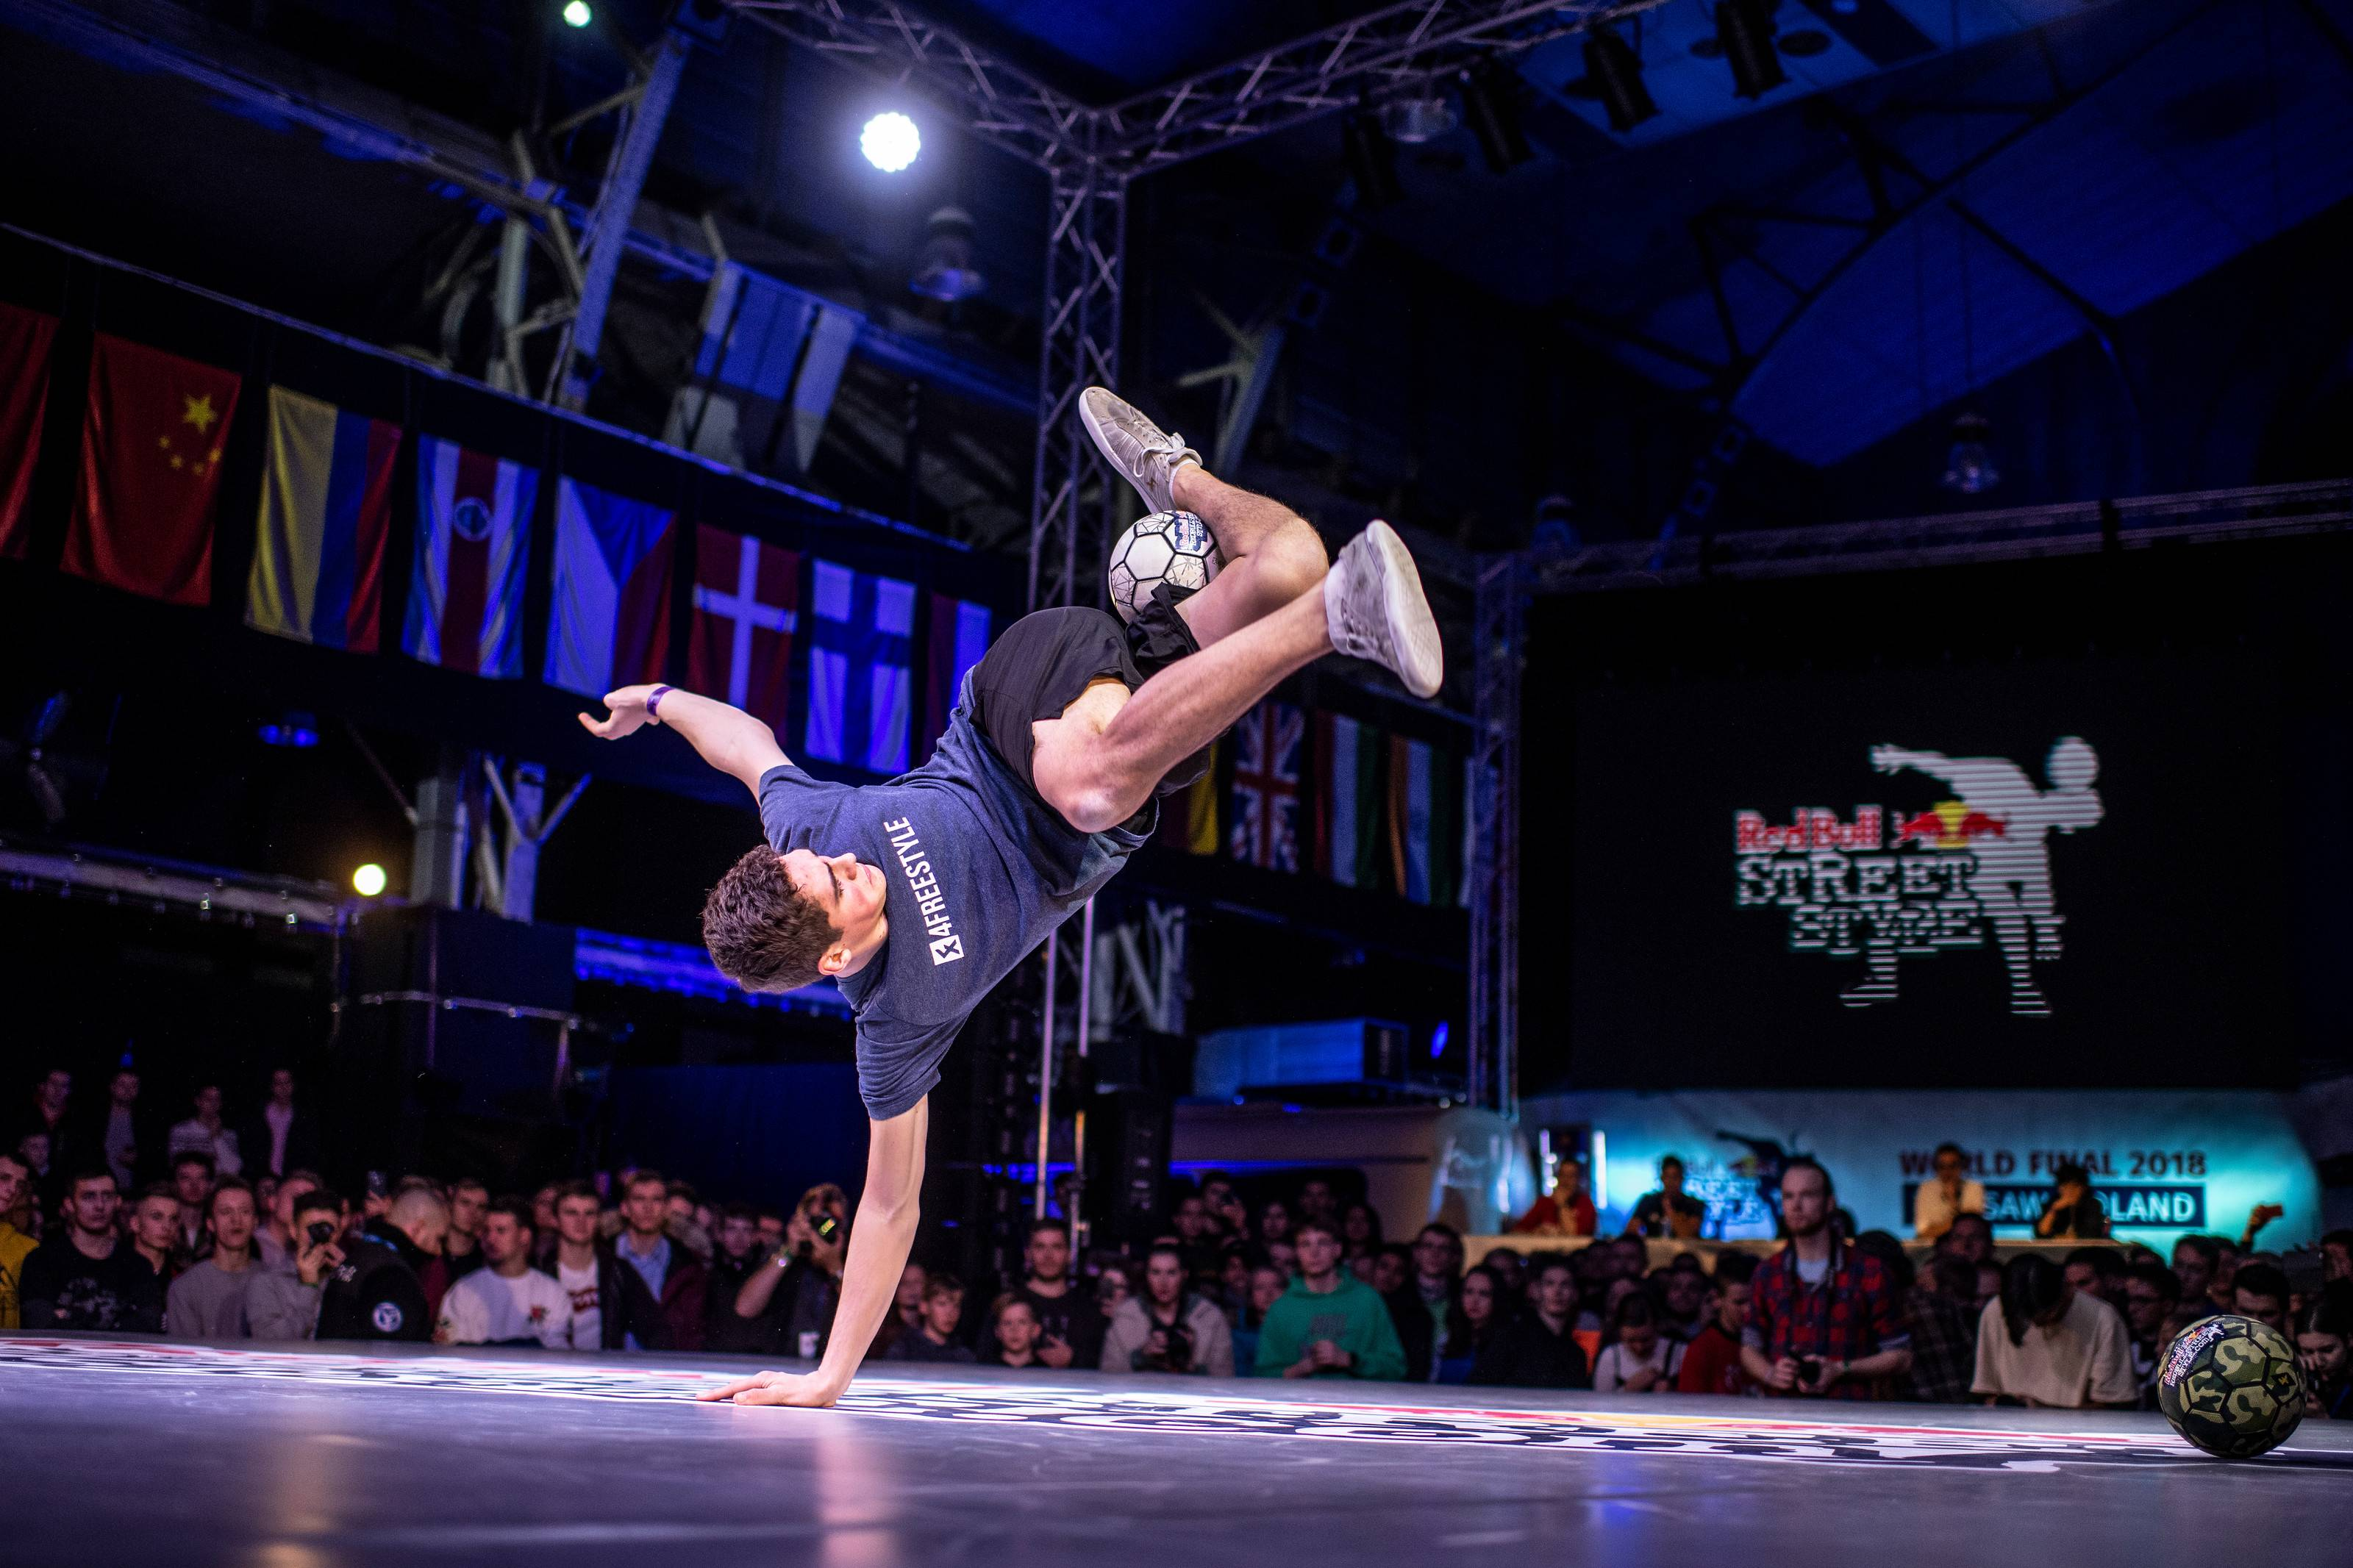 Red Bull Street Style World Final, the official World Championship of freestyle football, debuts in North America this fall